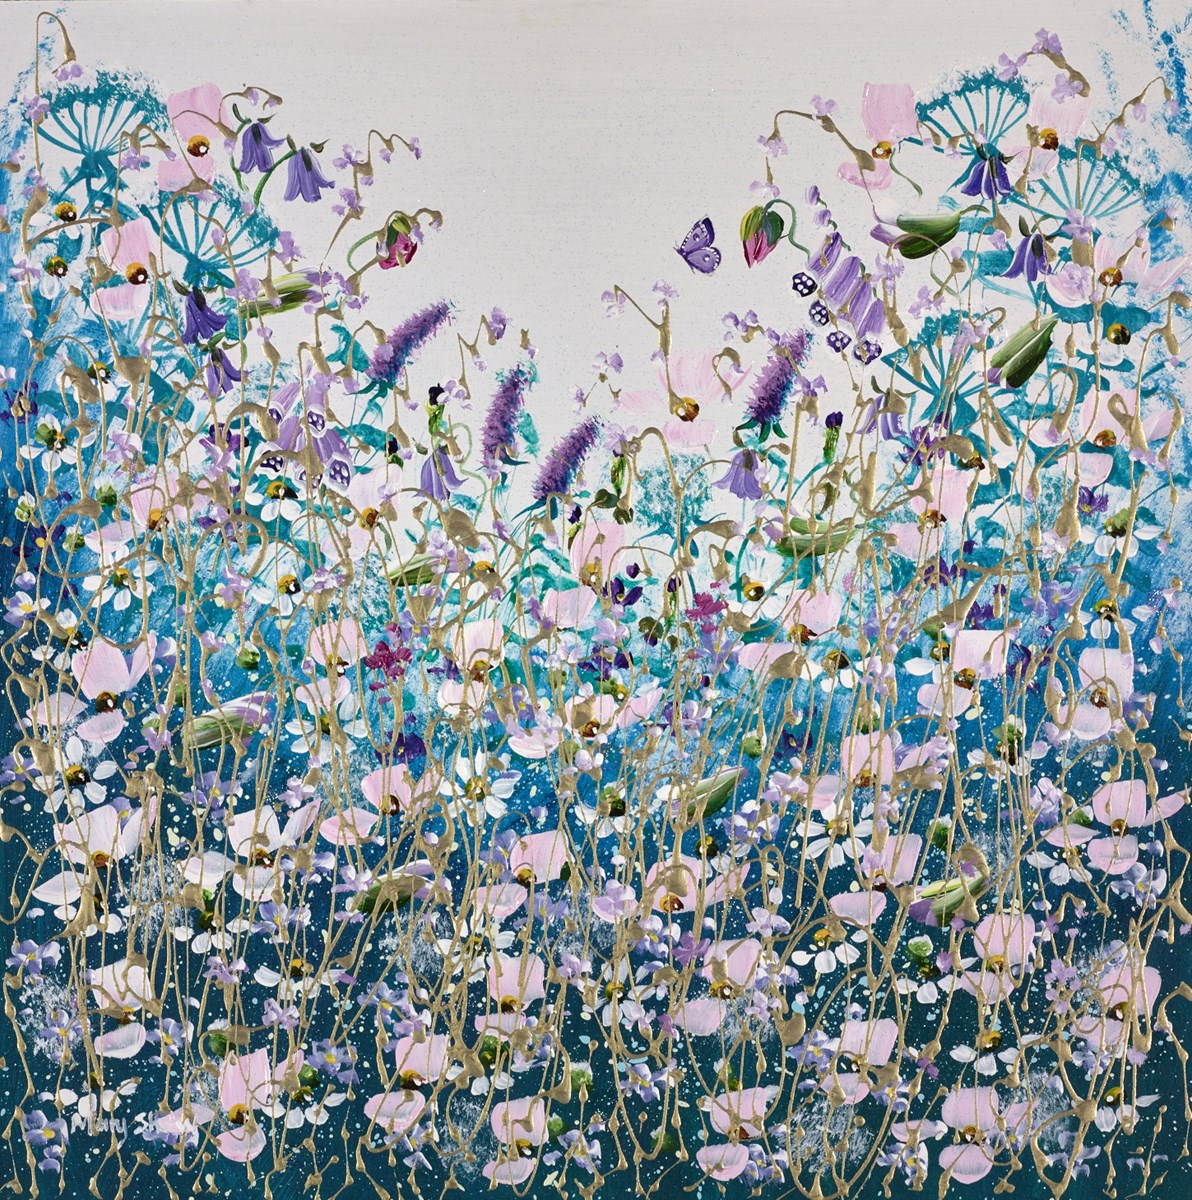 Pink Flowers II by mary shaw -  sized 16x16 inches. Available from Whitewall Galleries